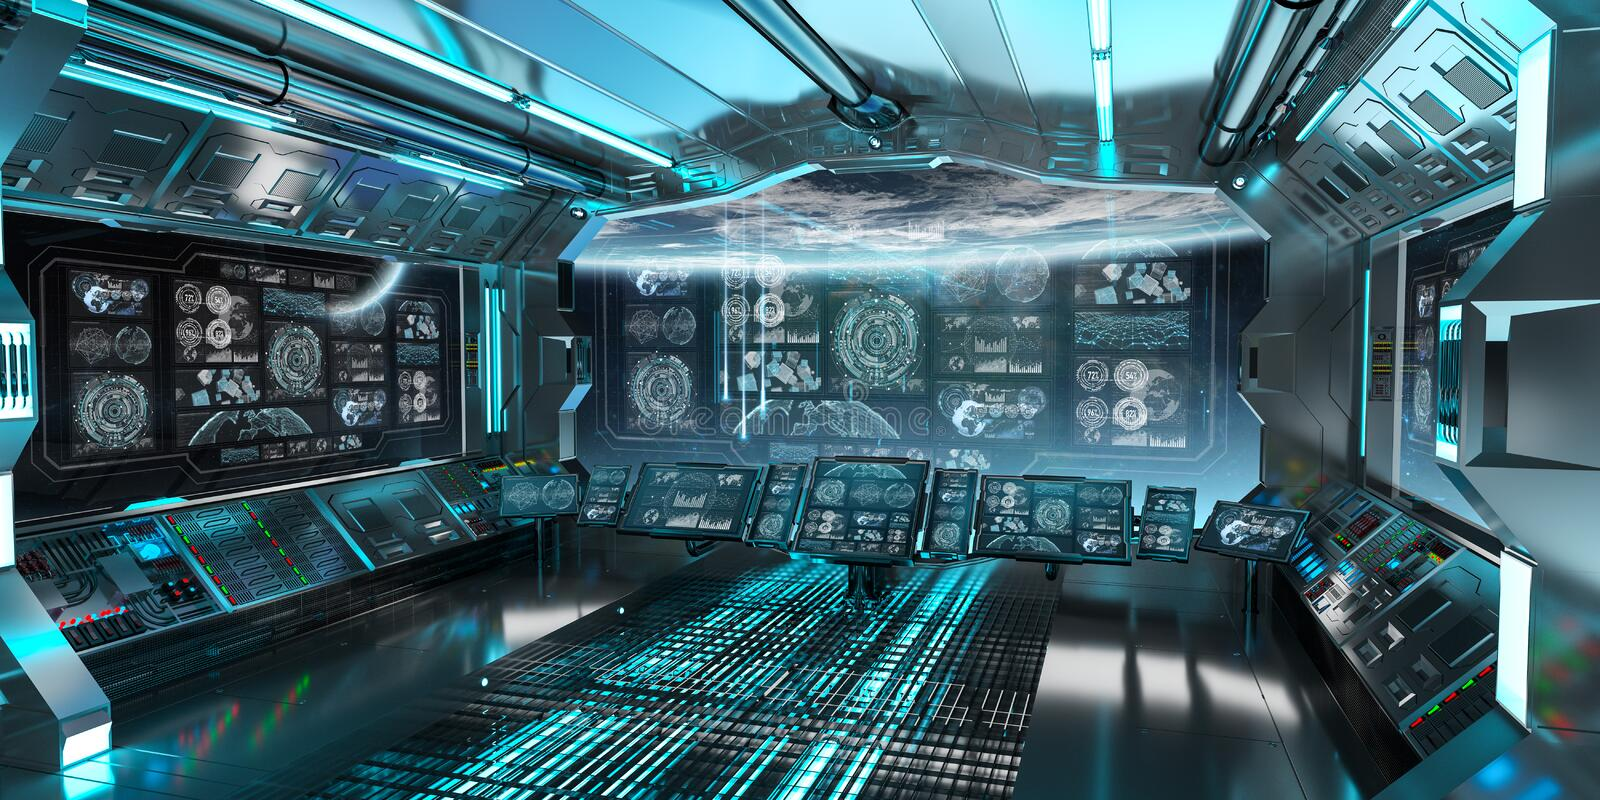 Blue spaceship interior with control panel screens 3D rendering stock illustration